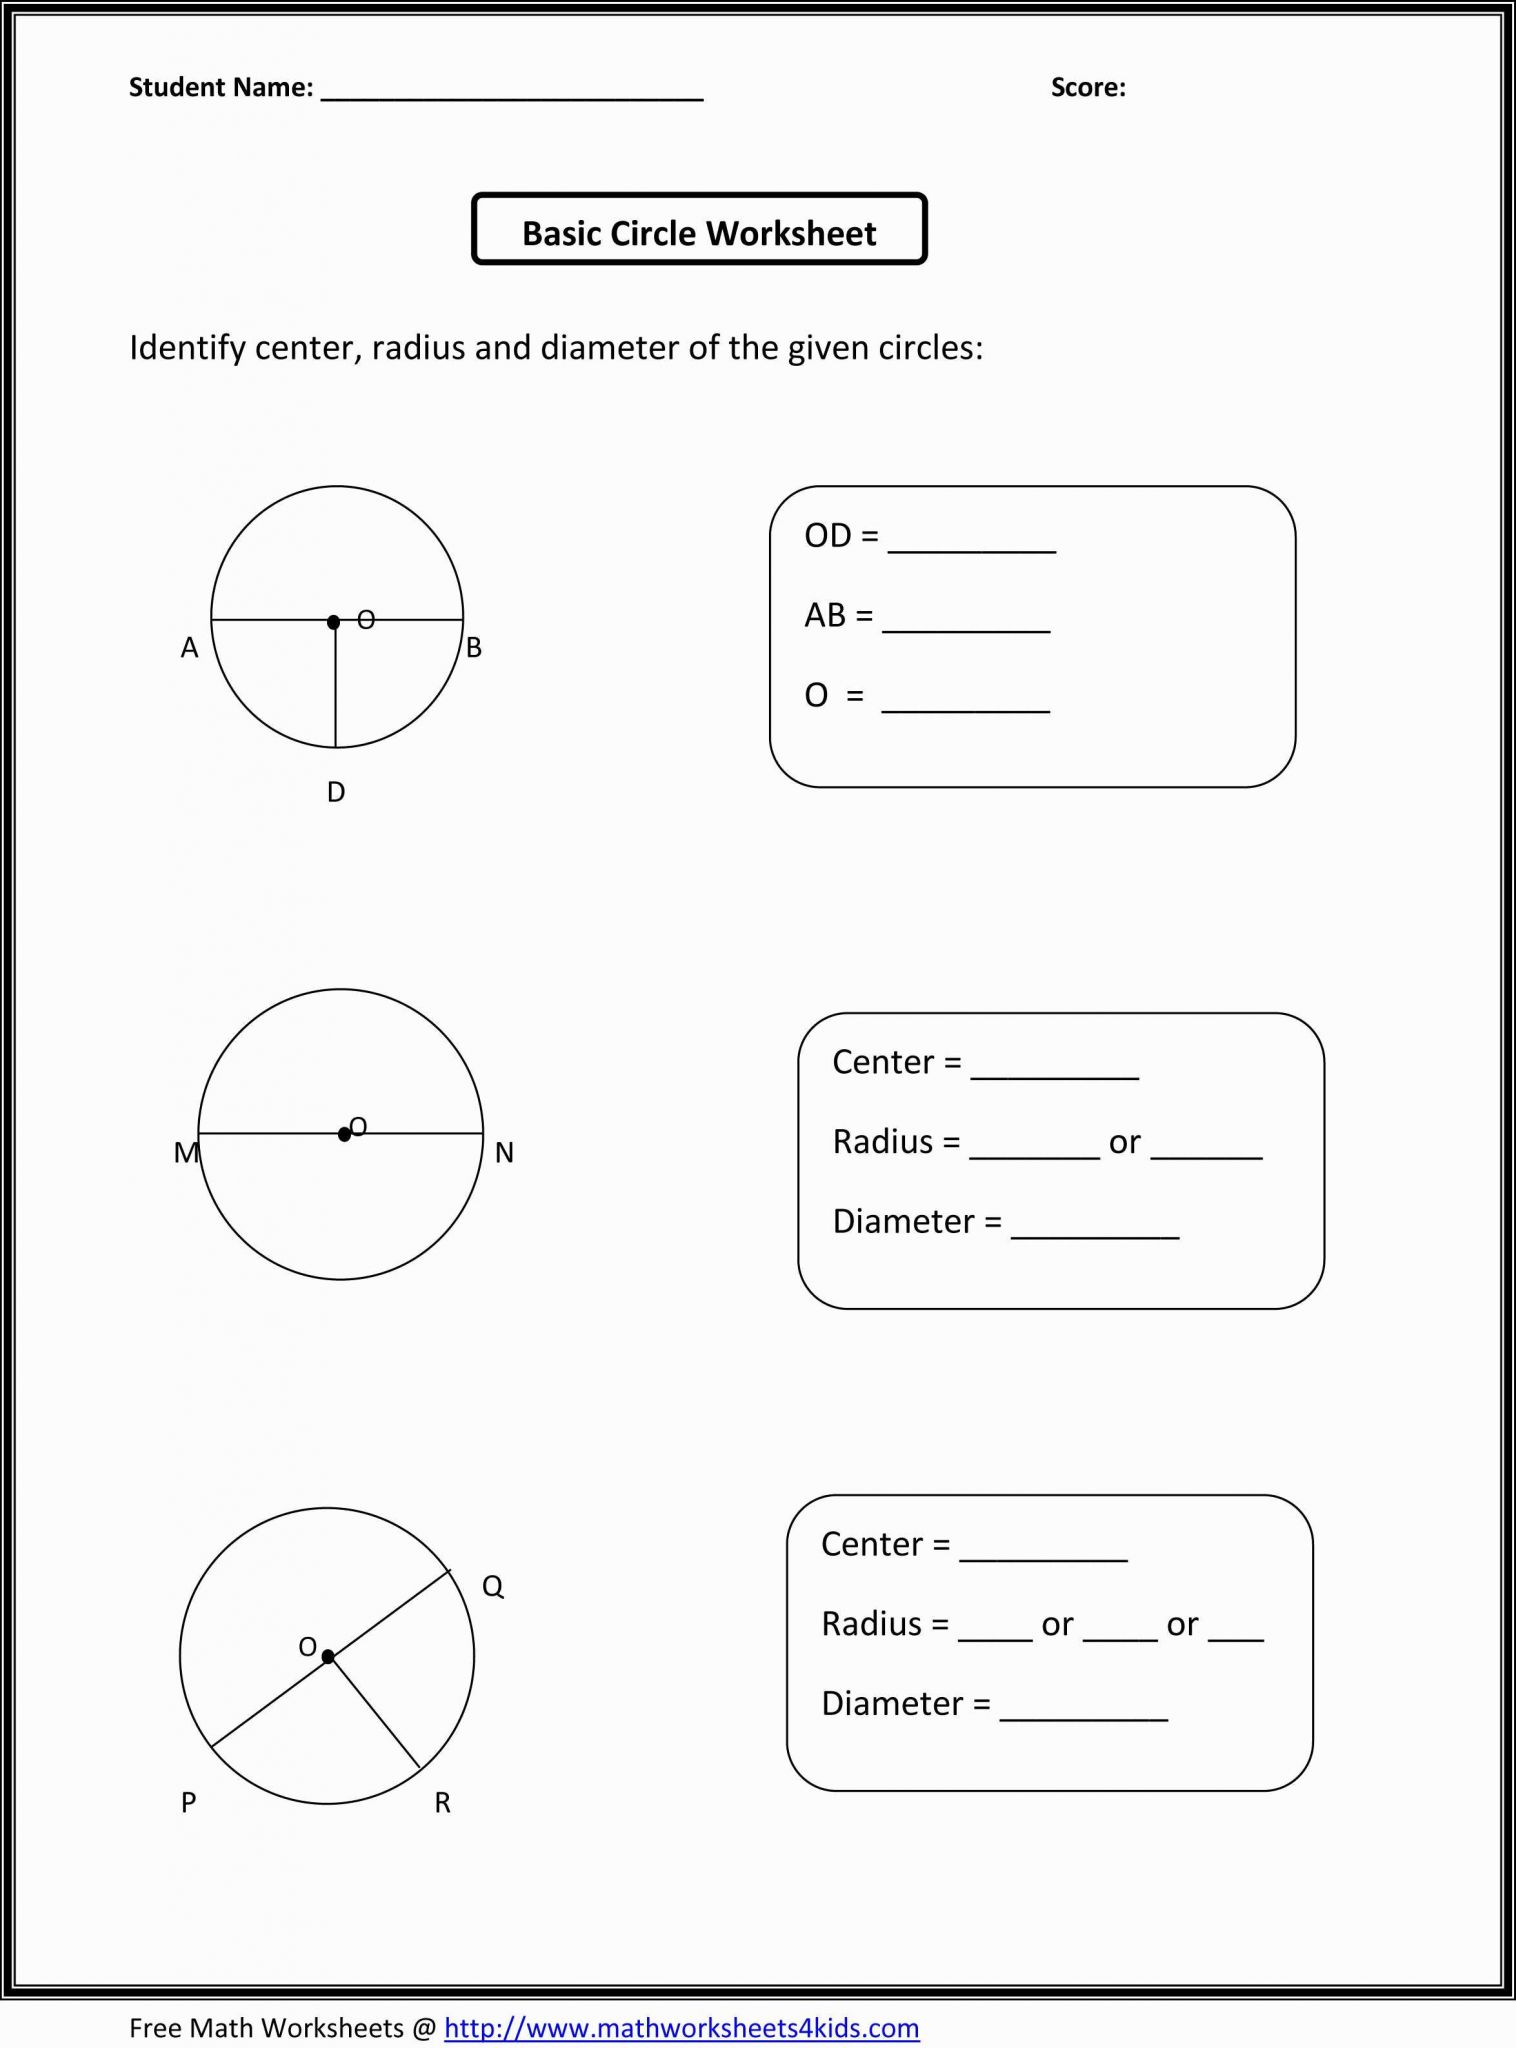 Solving Equations And Inequalities Worksheet Answers